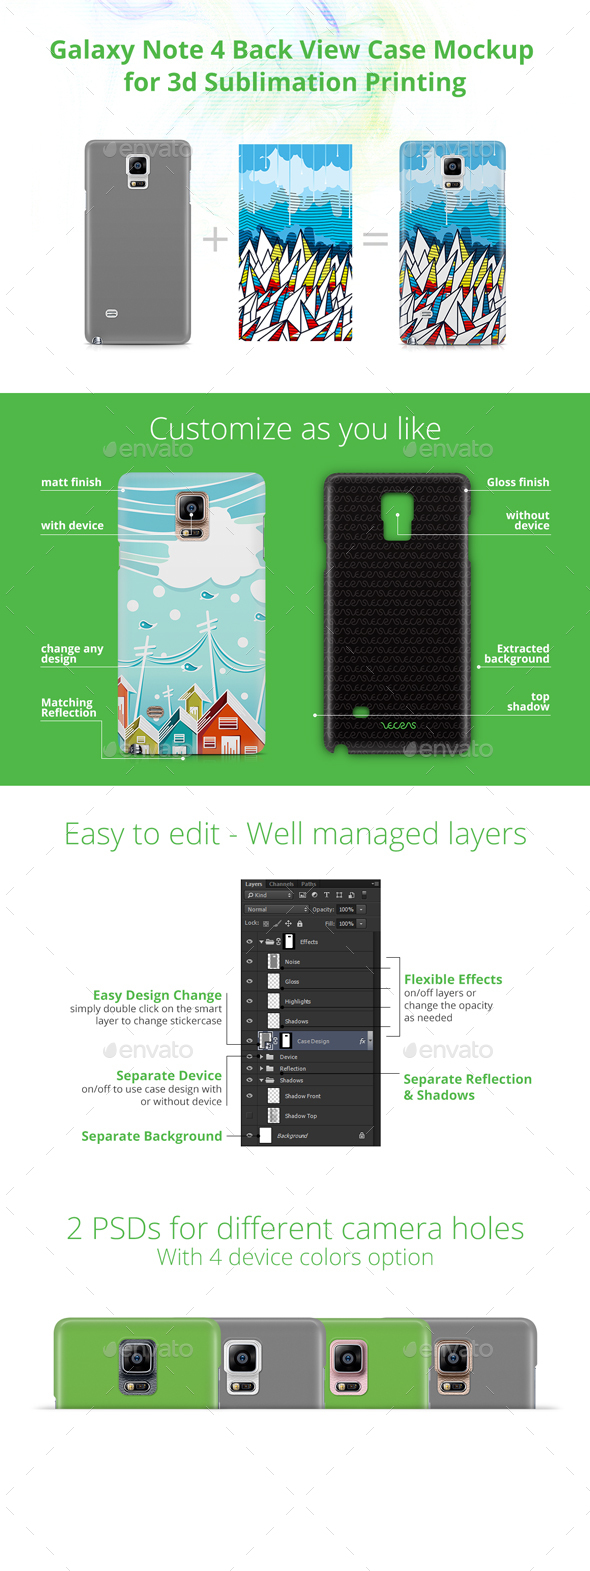 Galaxy Note 4 Case Design Mockup for 3d Sublimation Printing - Back View - Mobile Displays